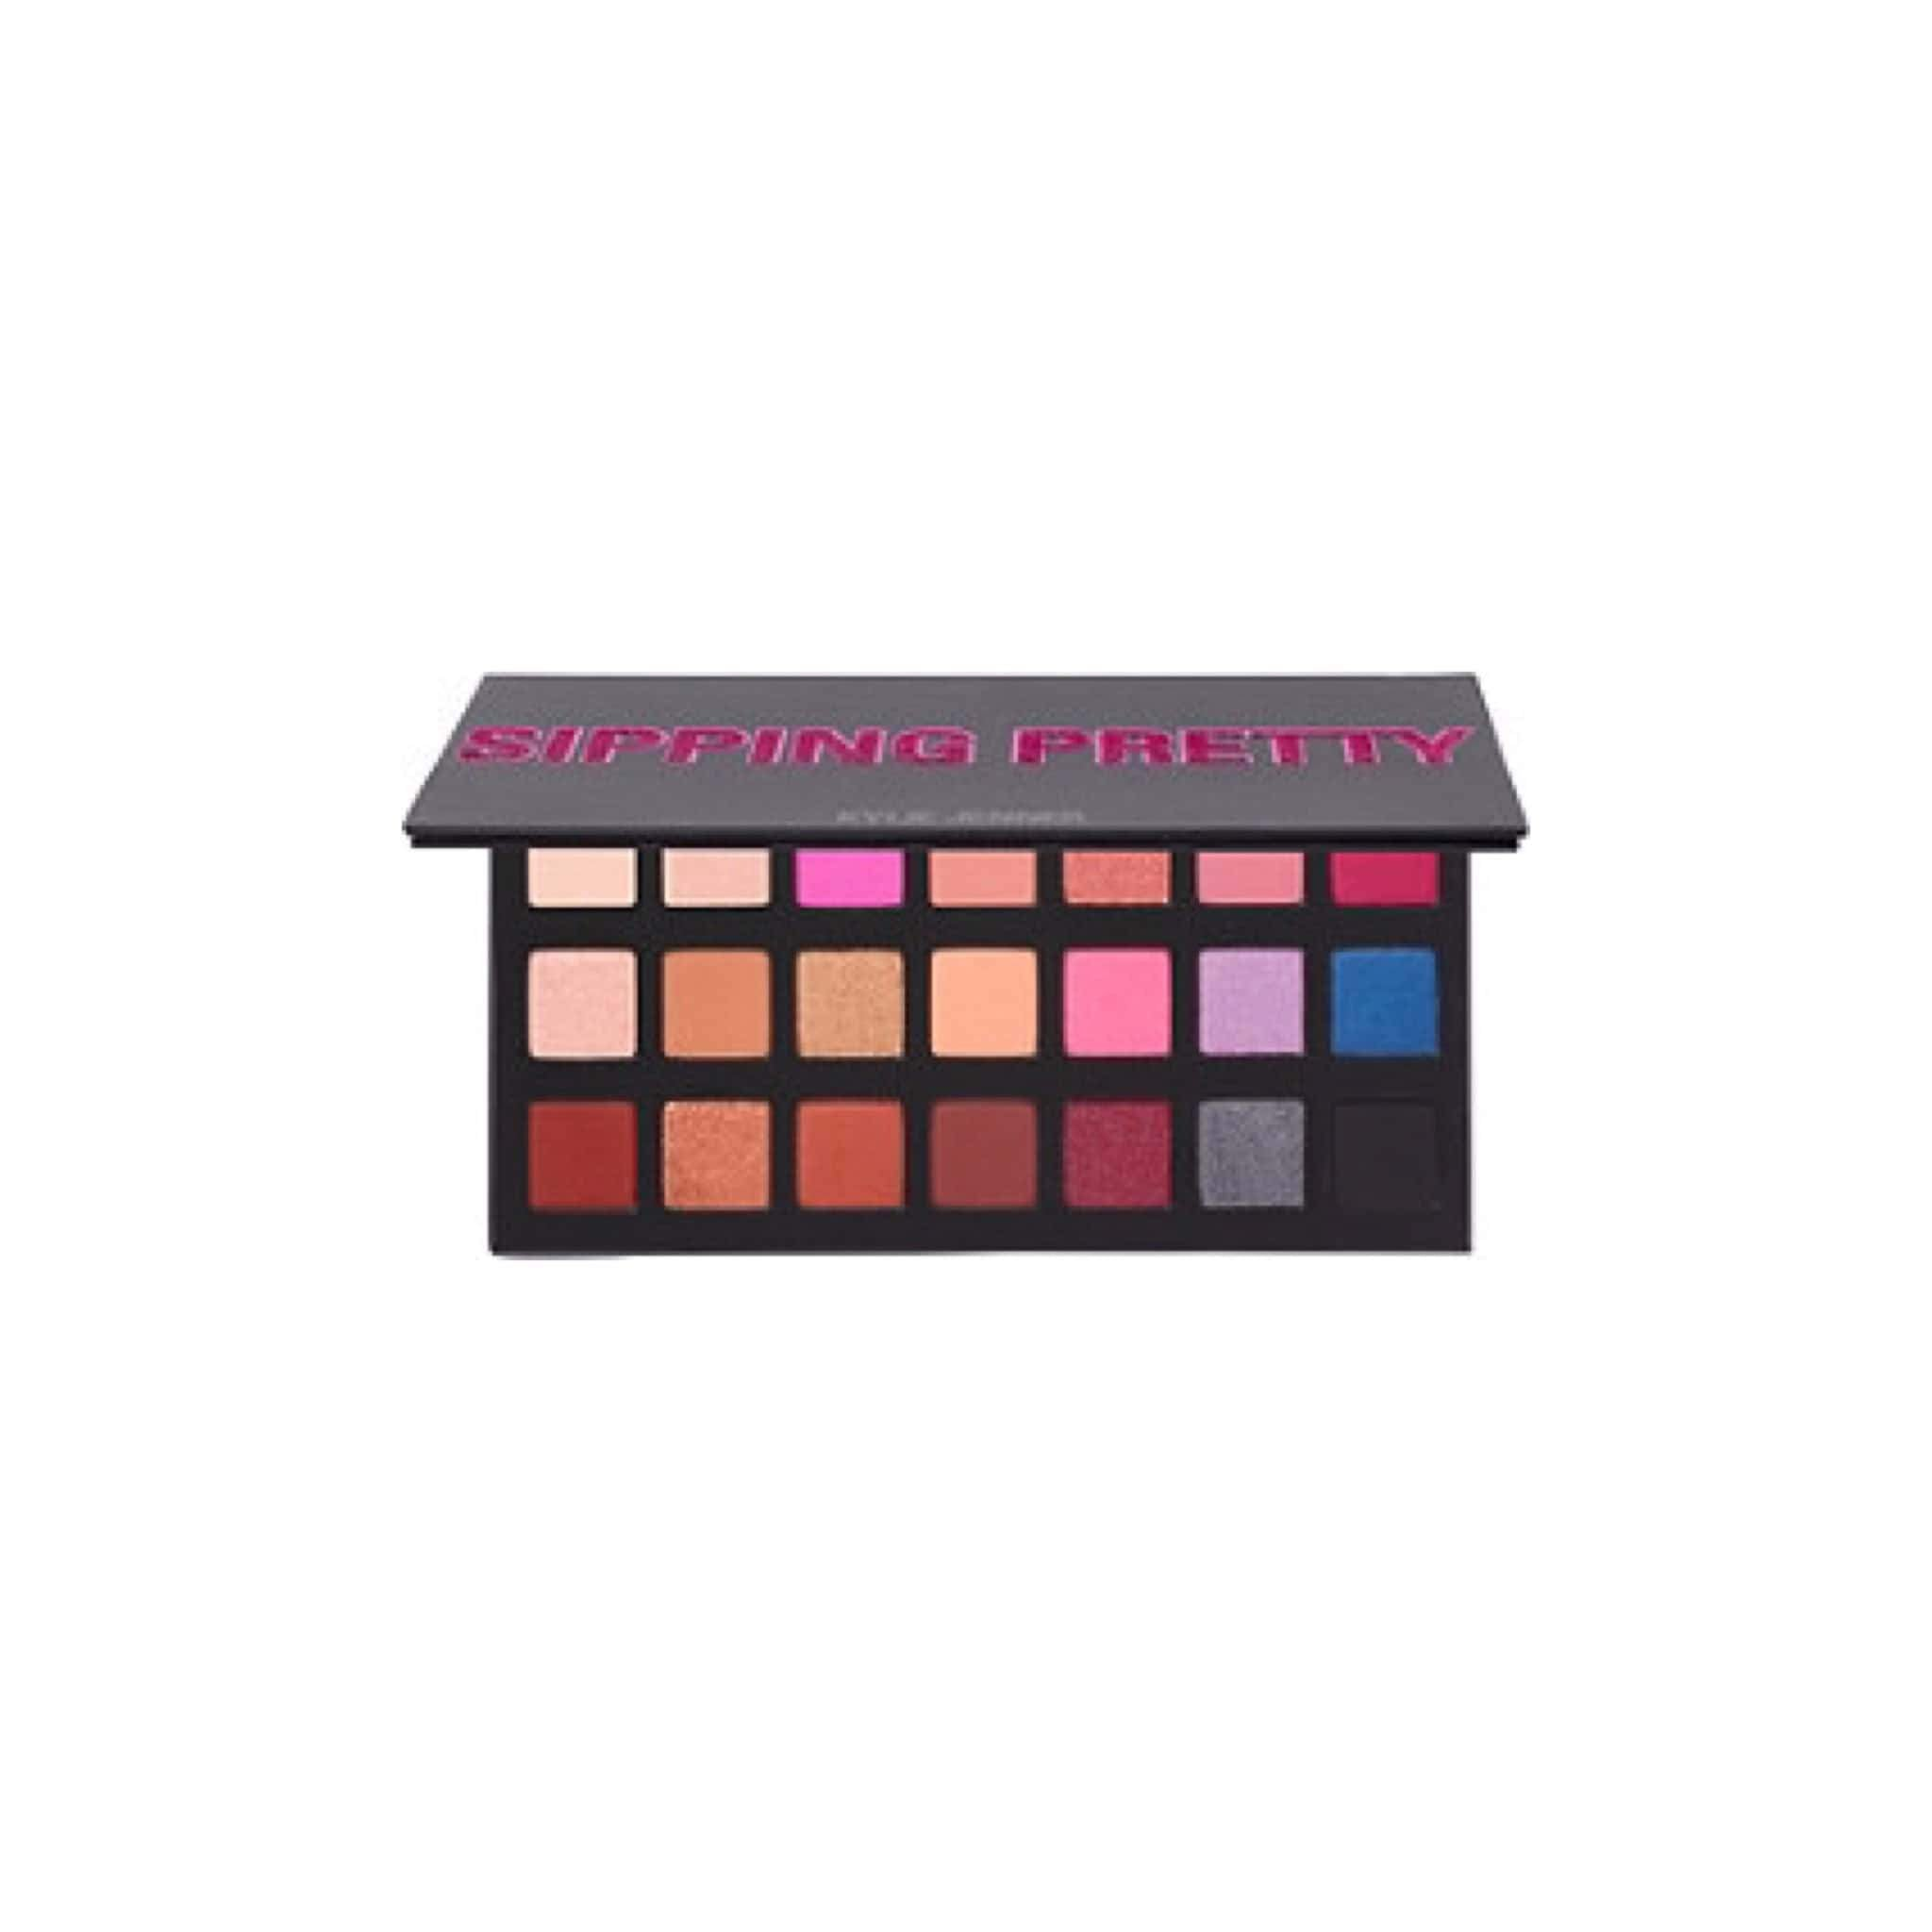 KYLIE COSMETICS Birthday 2018 Sipping Pretty Palette, 0.63 oz, Eyeshadow, London Loves Beauty